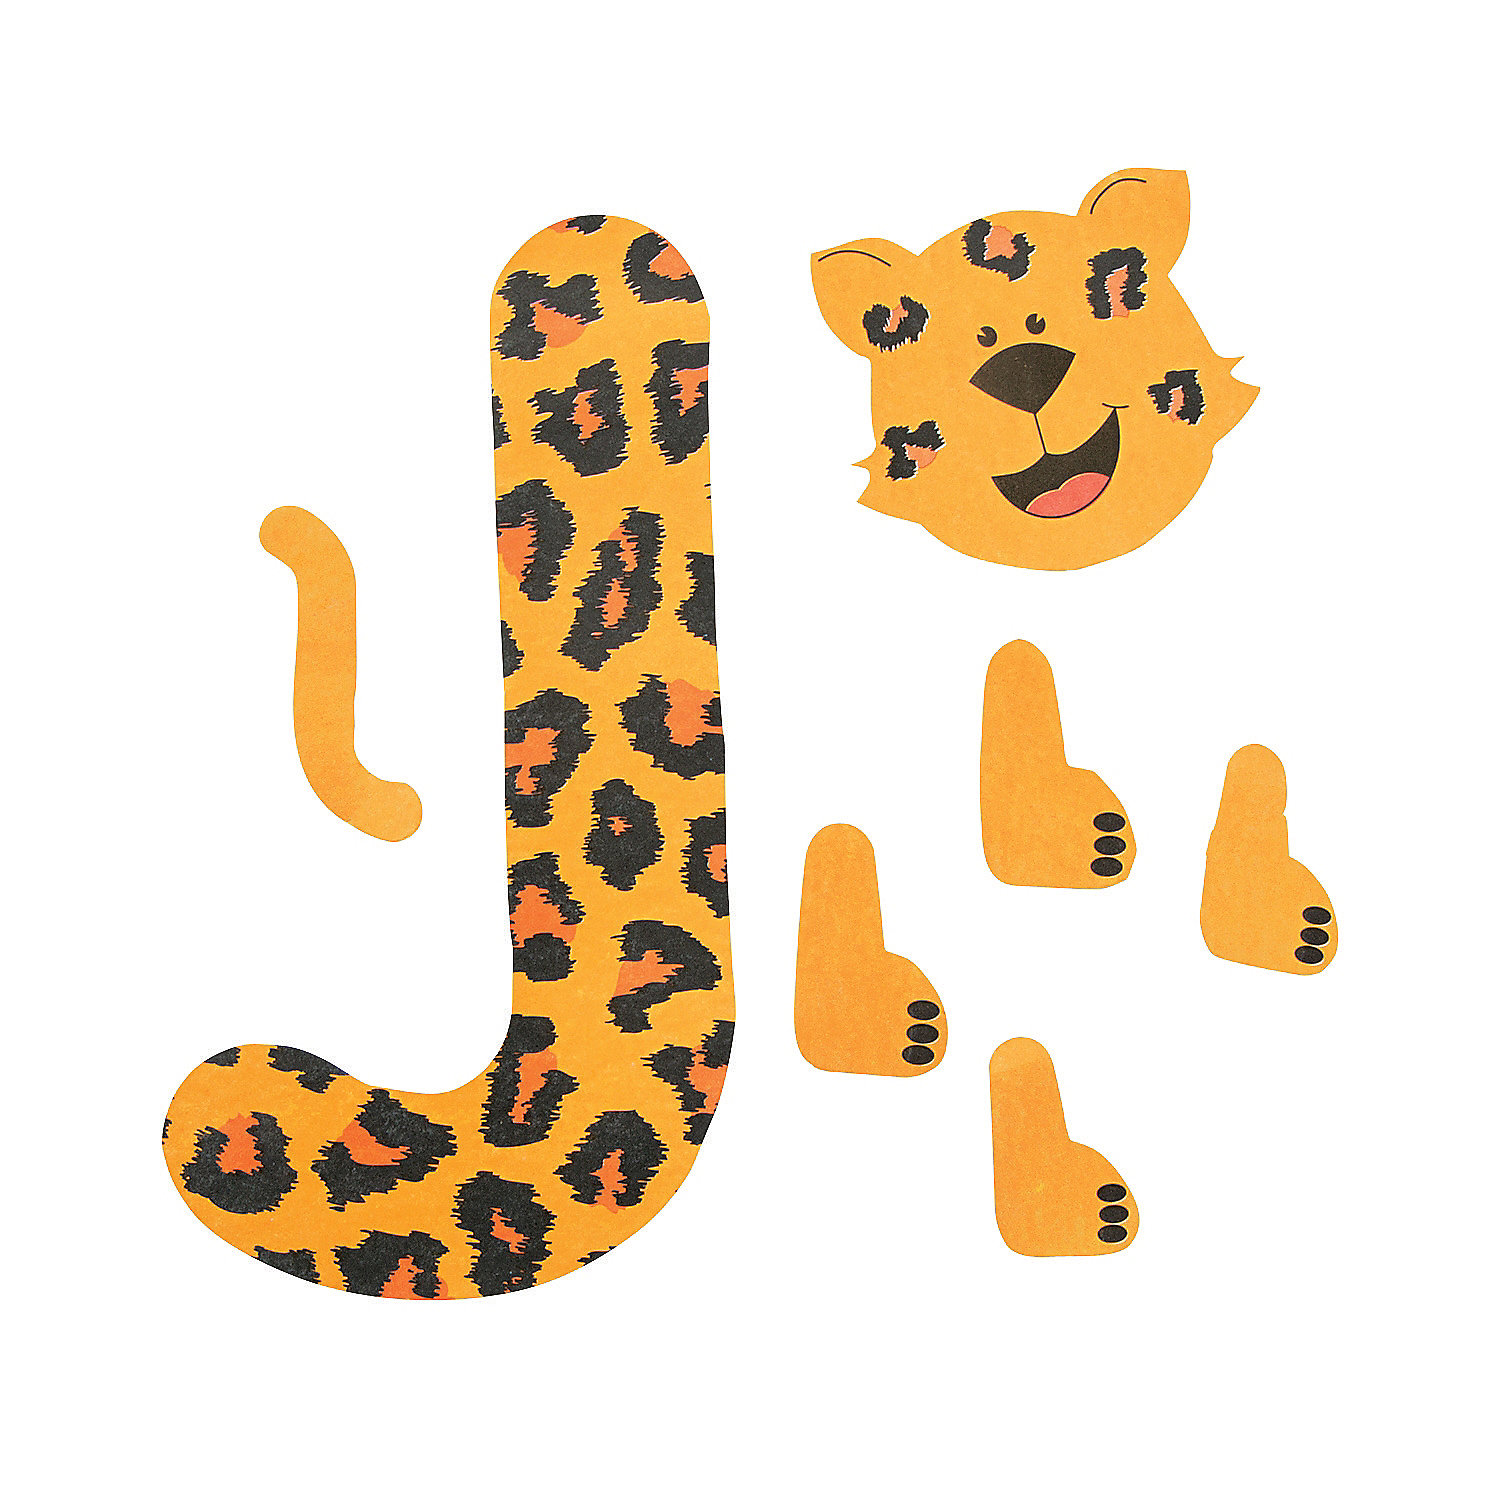 Jaguar Template For Letter J Craft